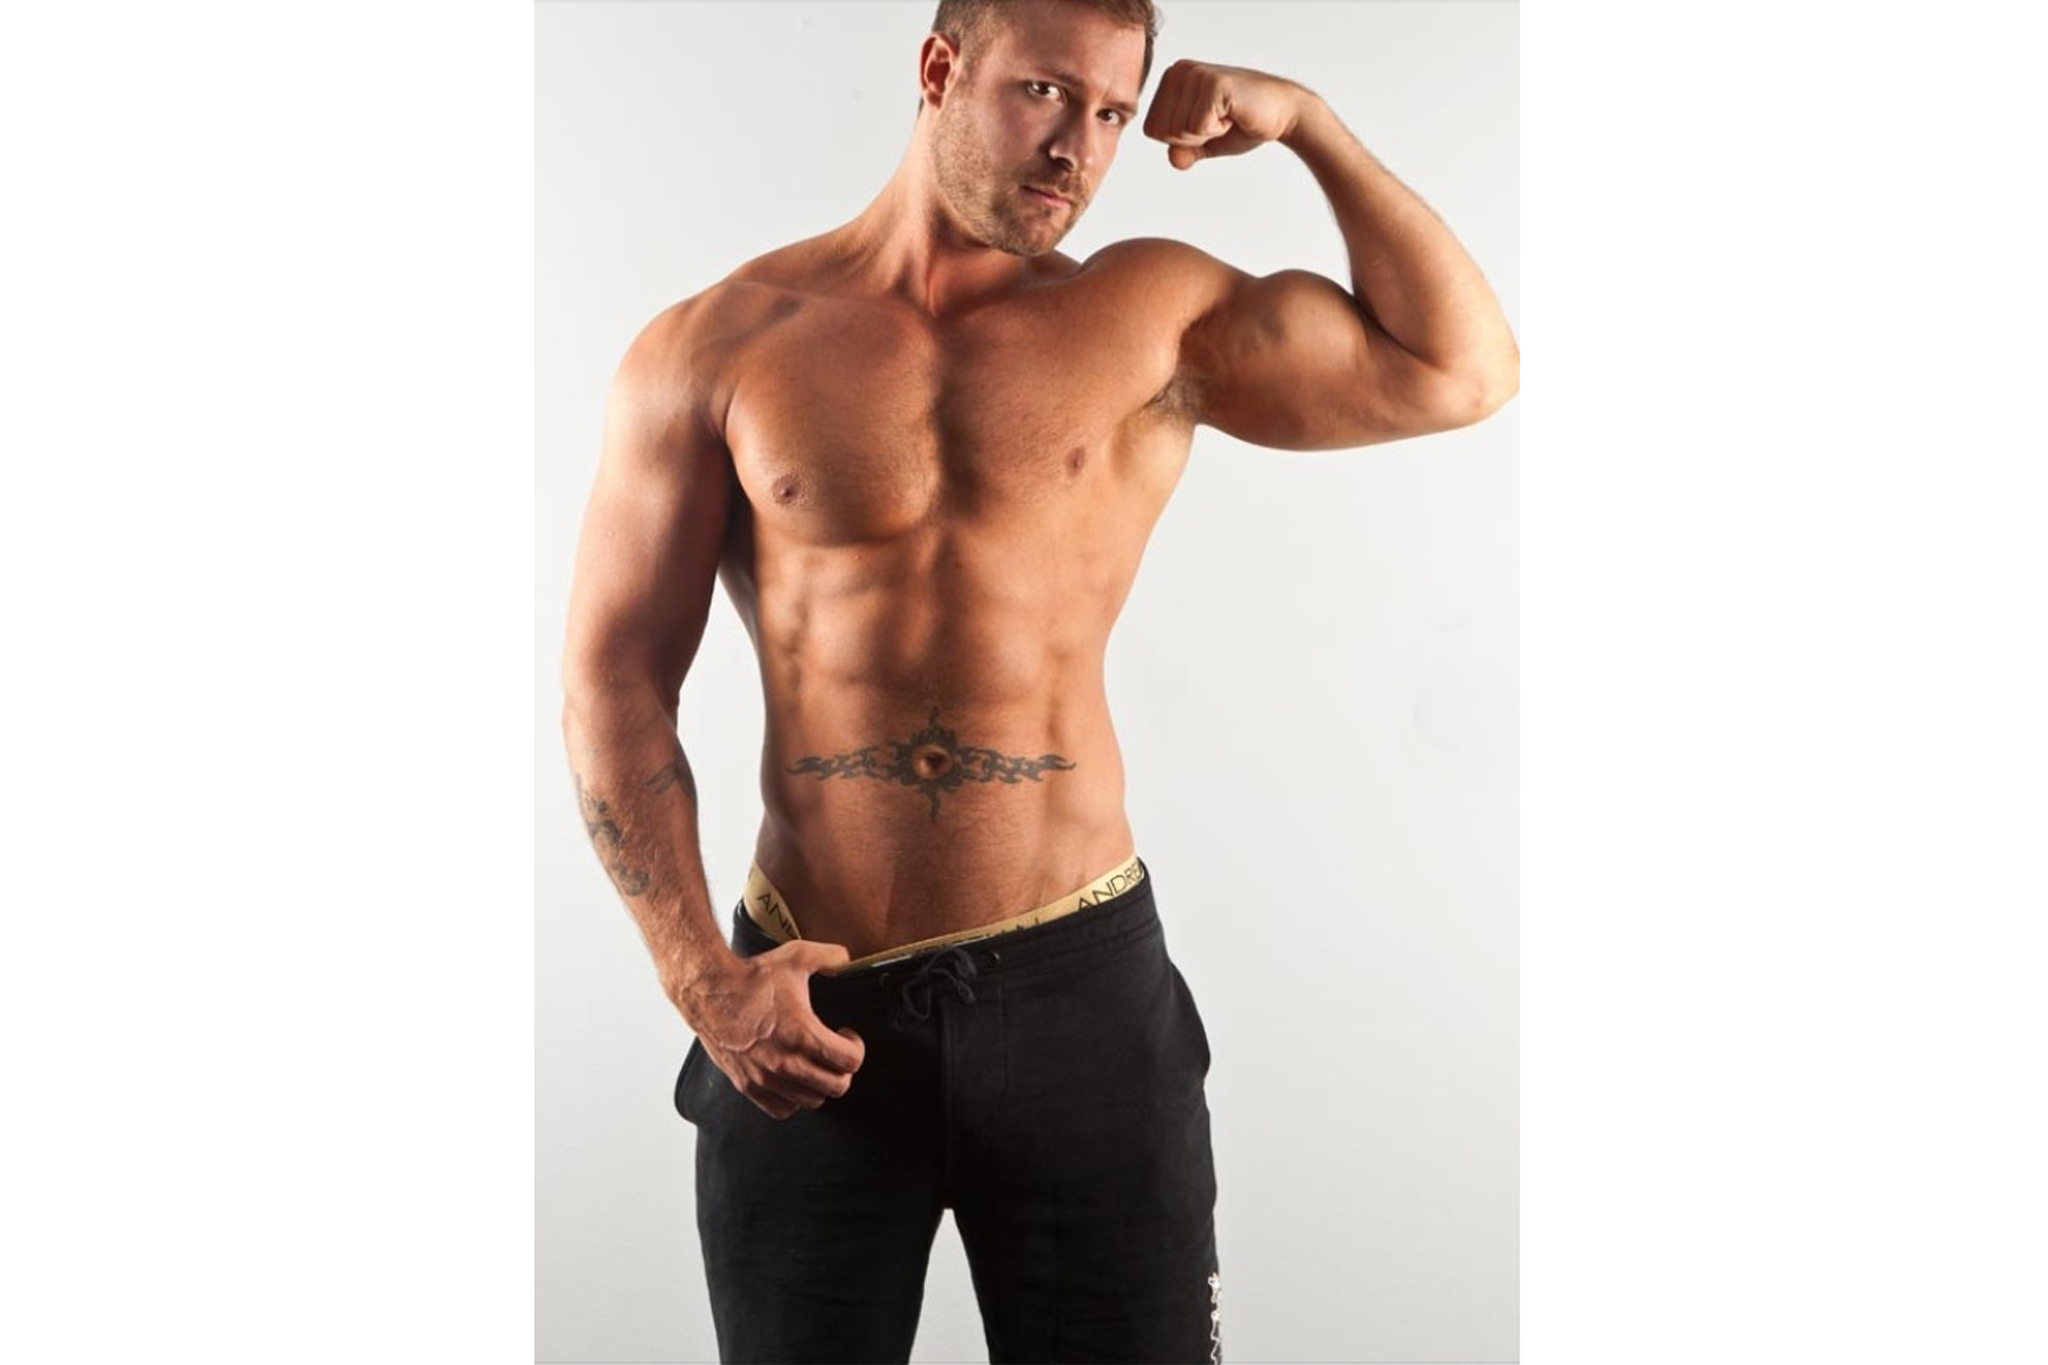 homosexual aj escort london